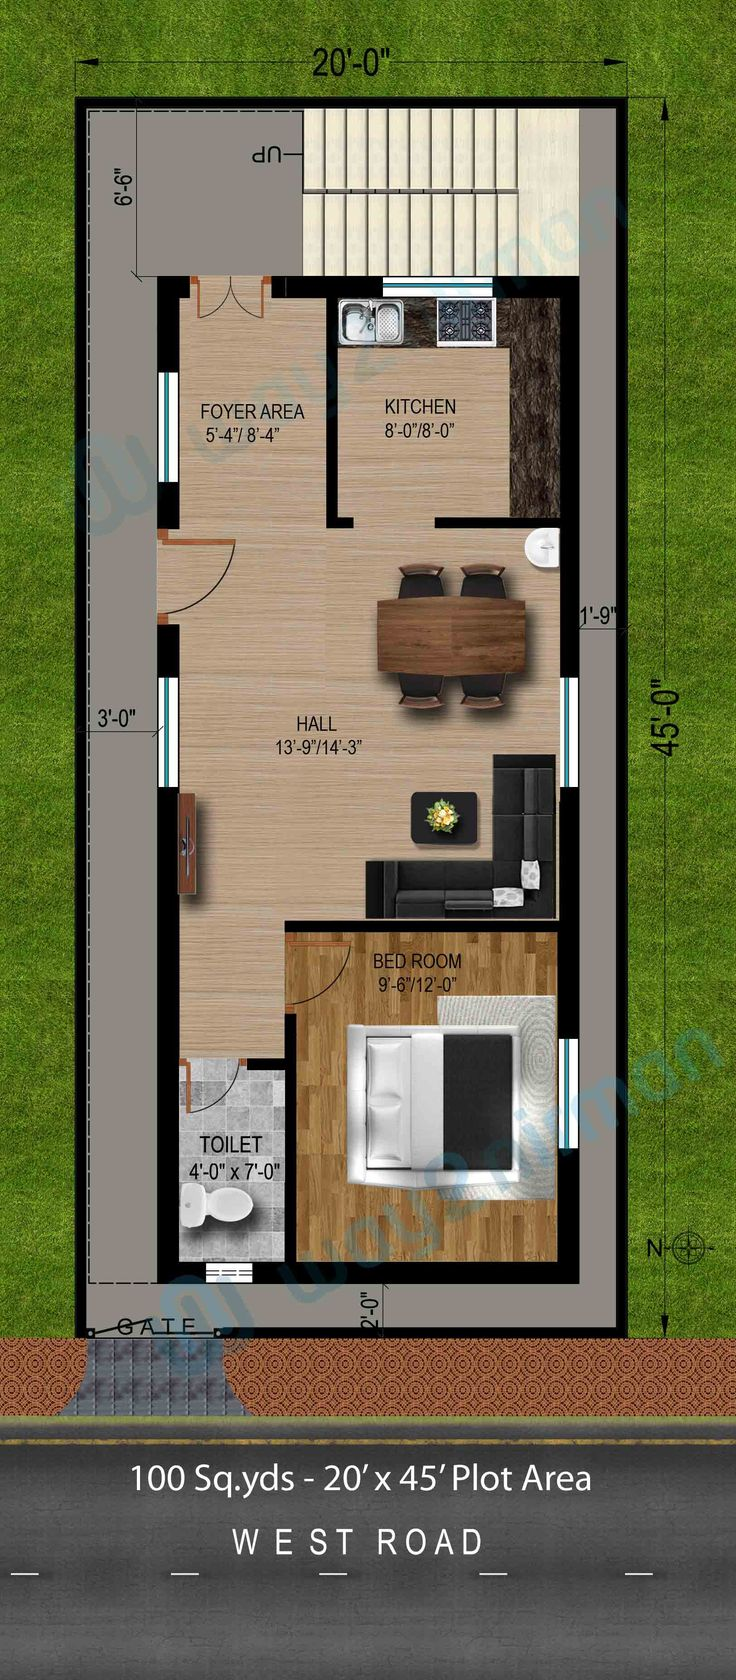 Pin by sabina on Ideas for the House | House plans, 2bhk ...